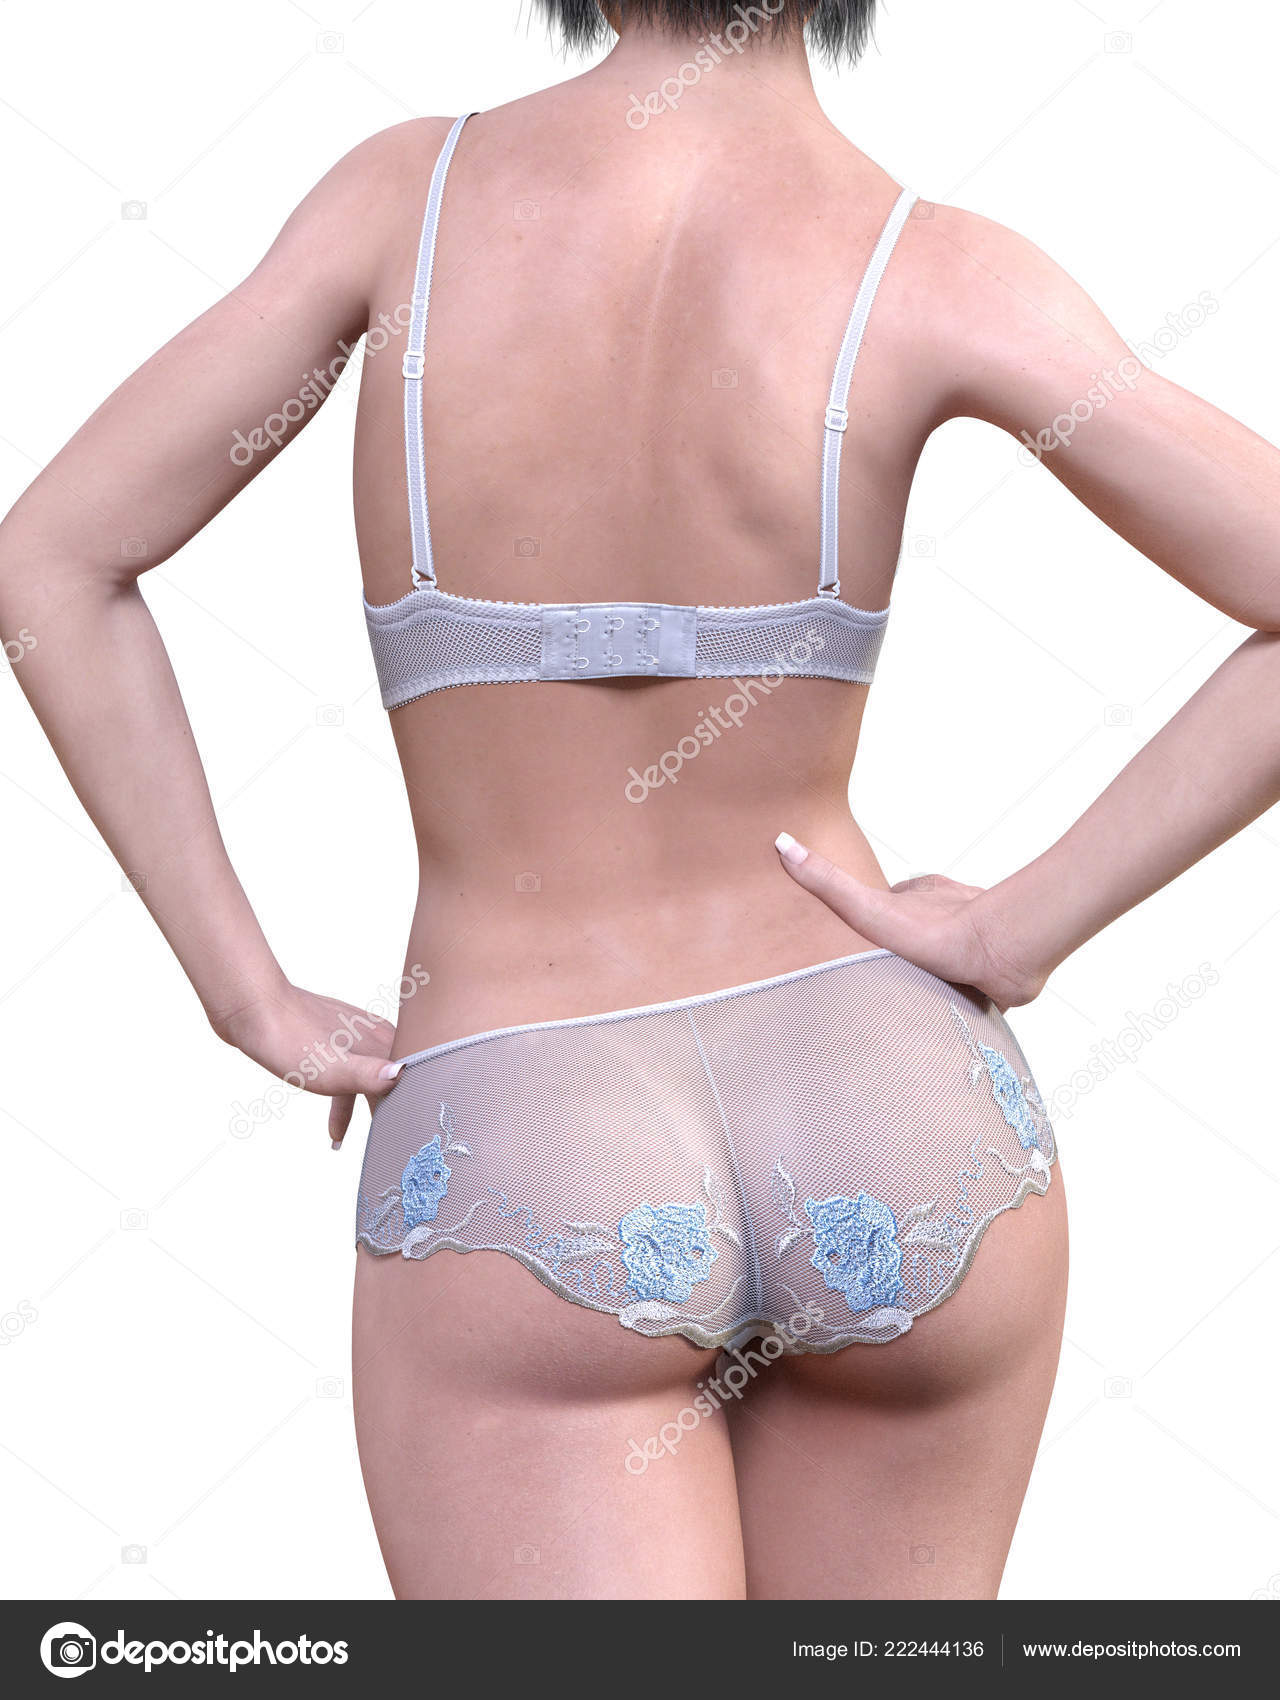 fa86163d579f9 Girl White Lacy Underwear Transparent Panties Bra Extravagant Fashion Art —  Stock Photo